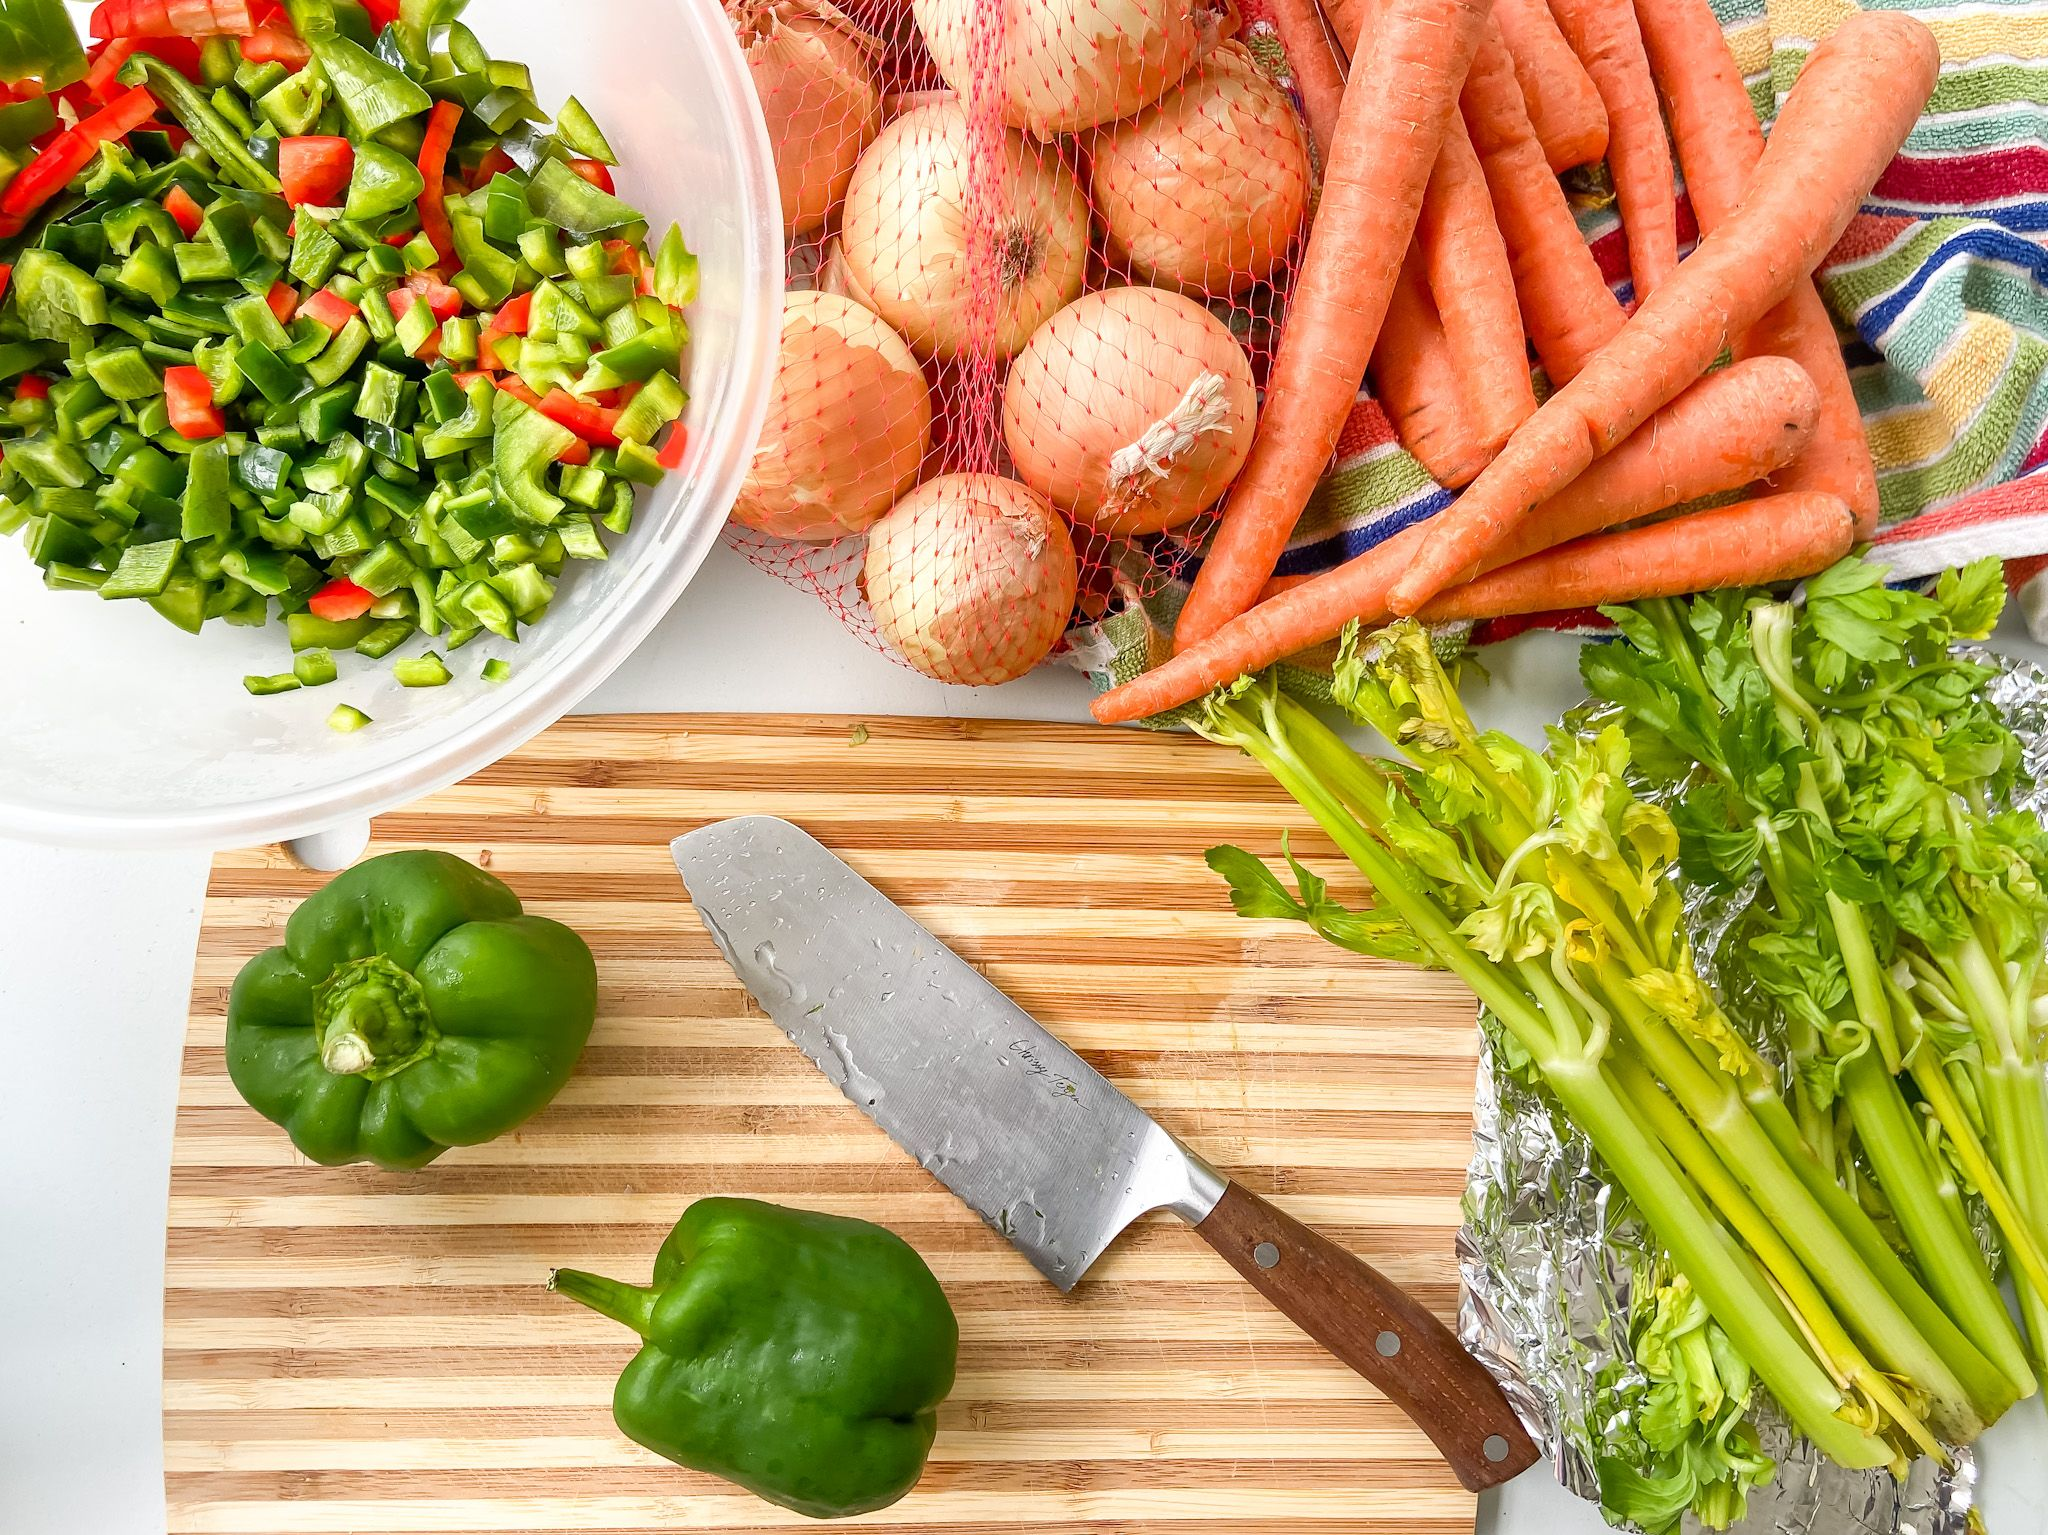 cut up peppers, bag of onions, raw carrots and celery, cutting board, easy freezer meal soup starters